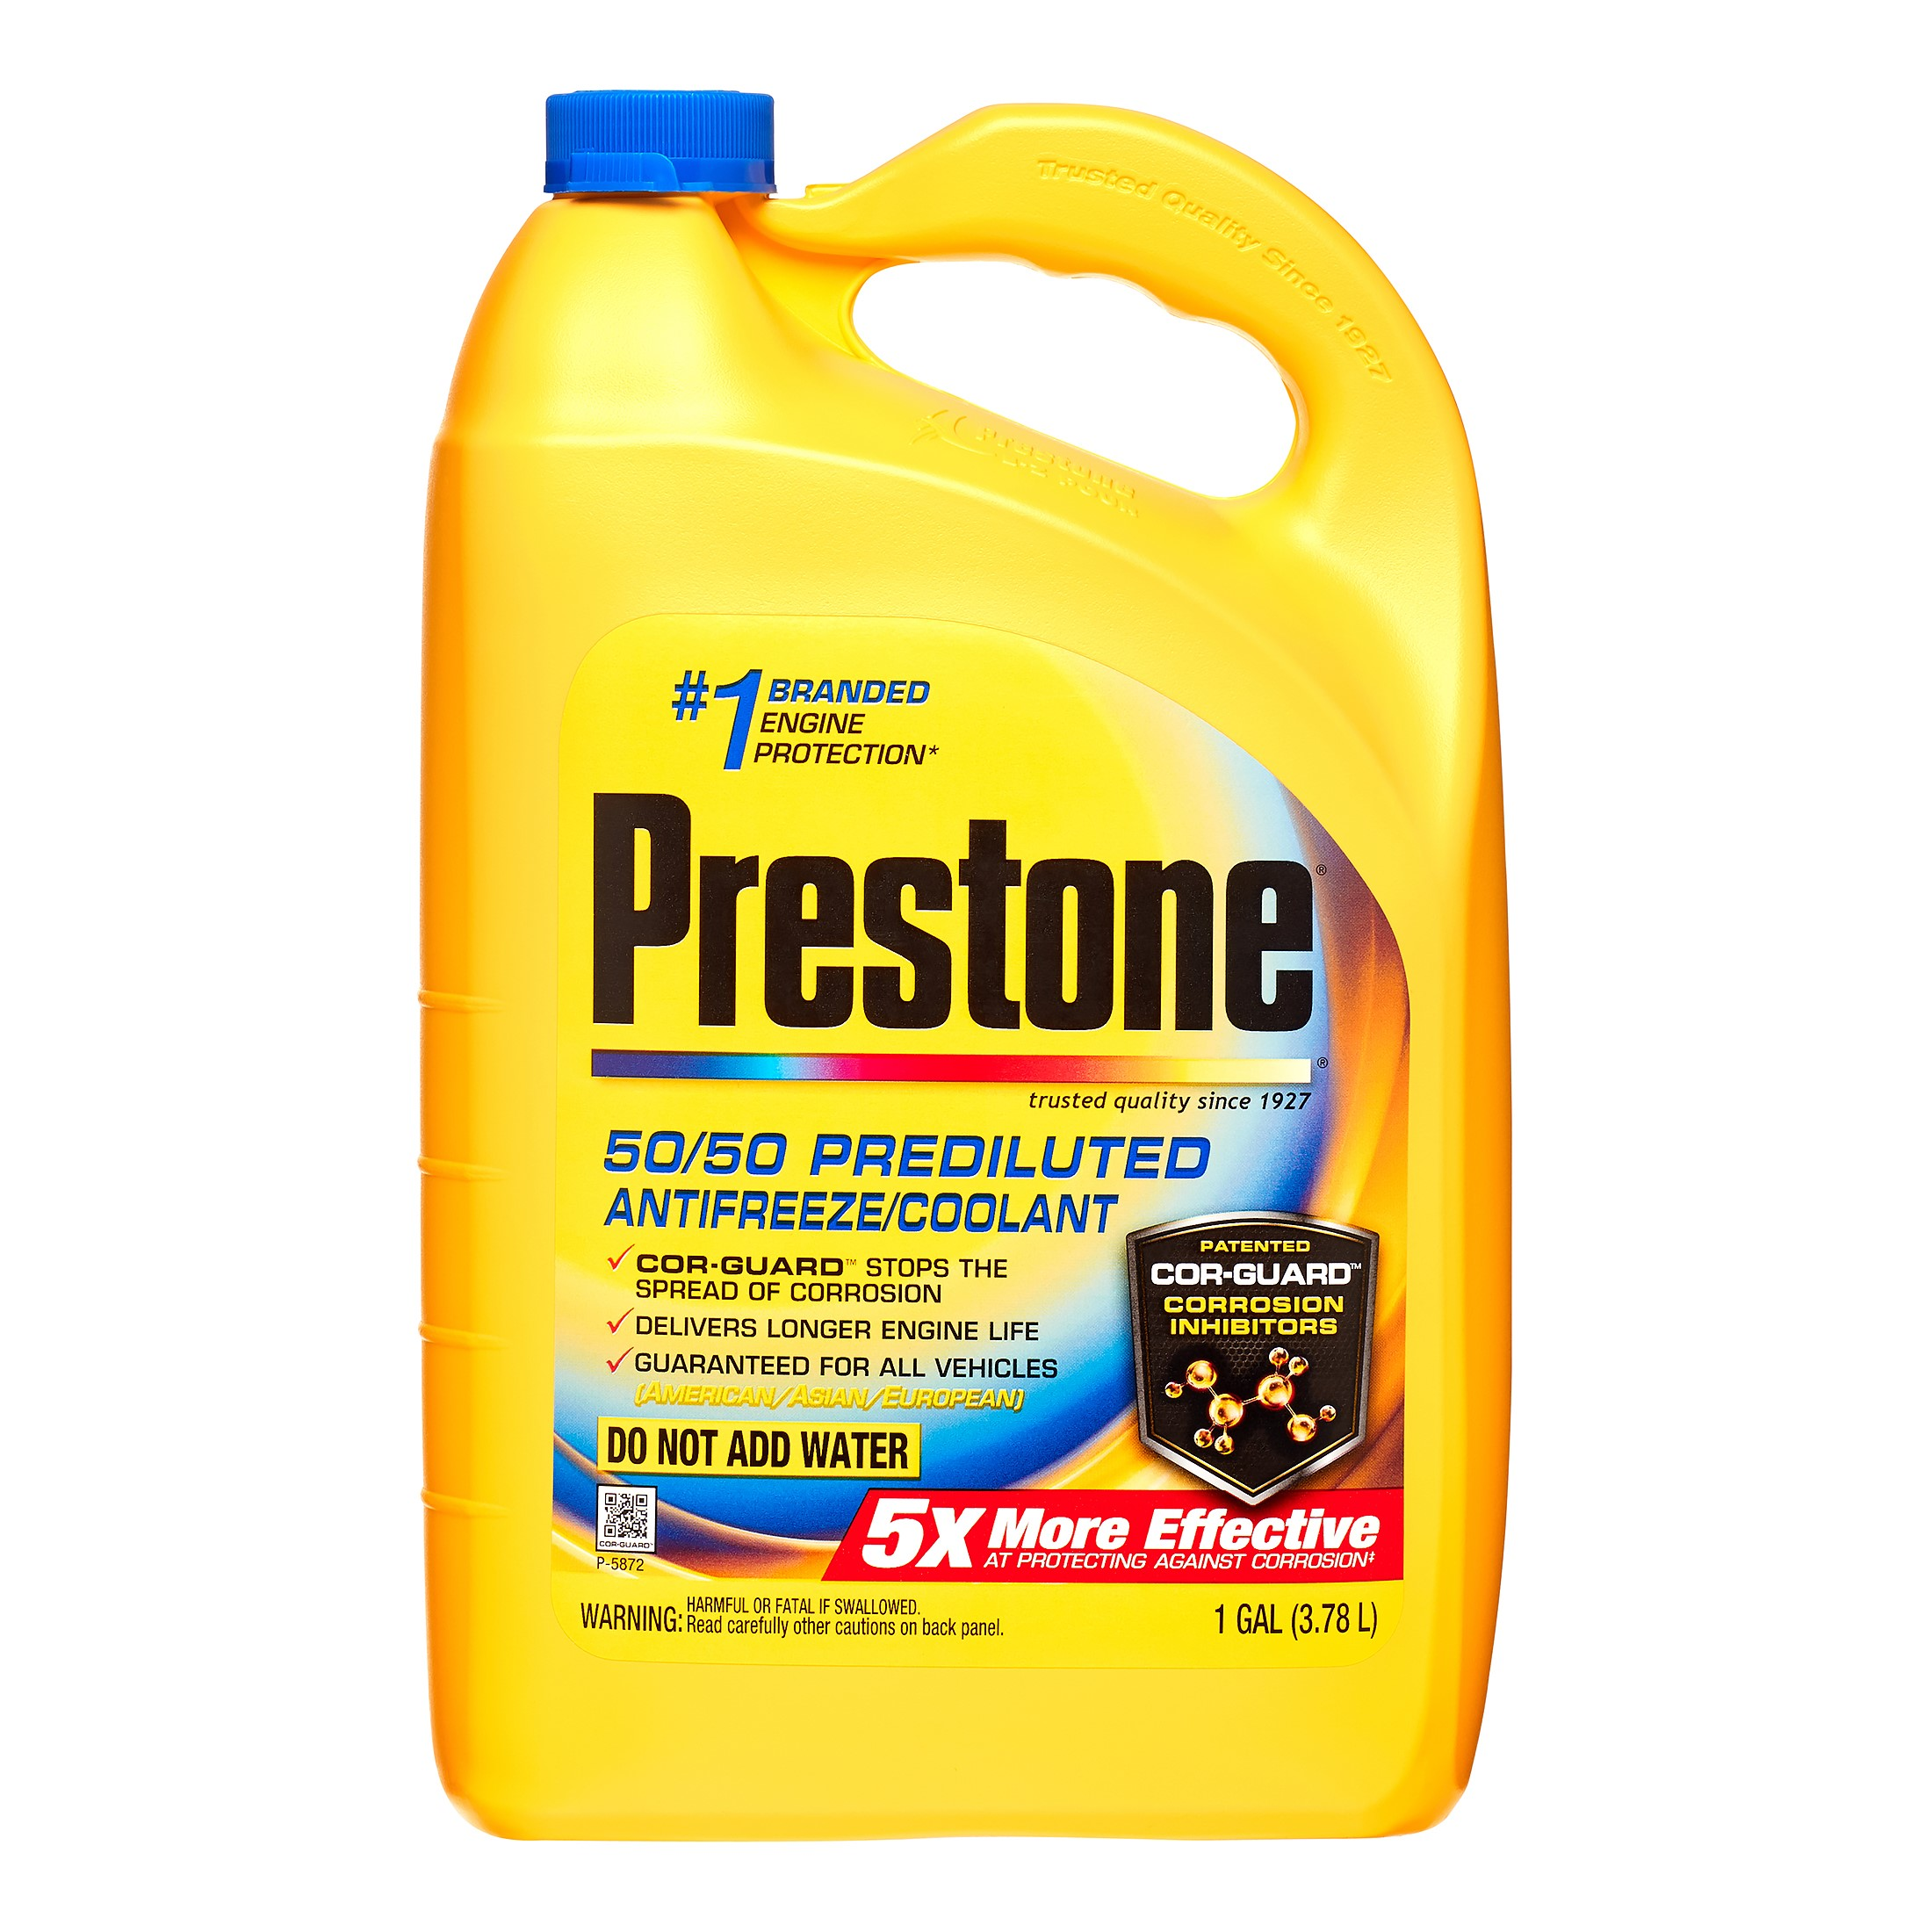 Prestone Extended Life Prediluted Antifreeze/Coolant 1-Gallon Jug